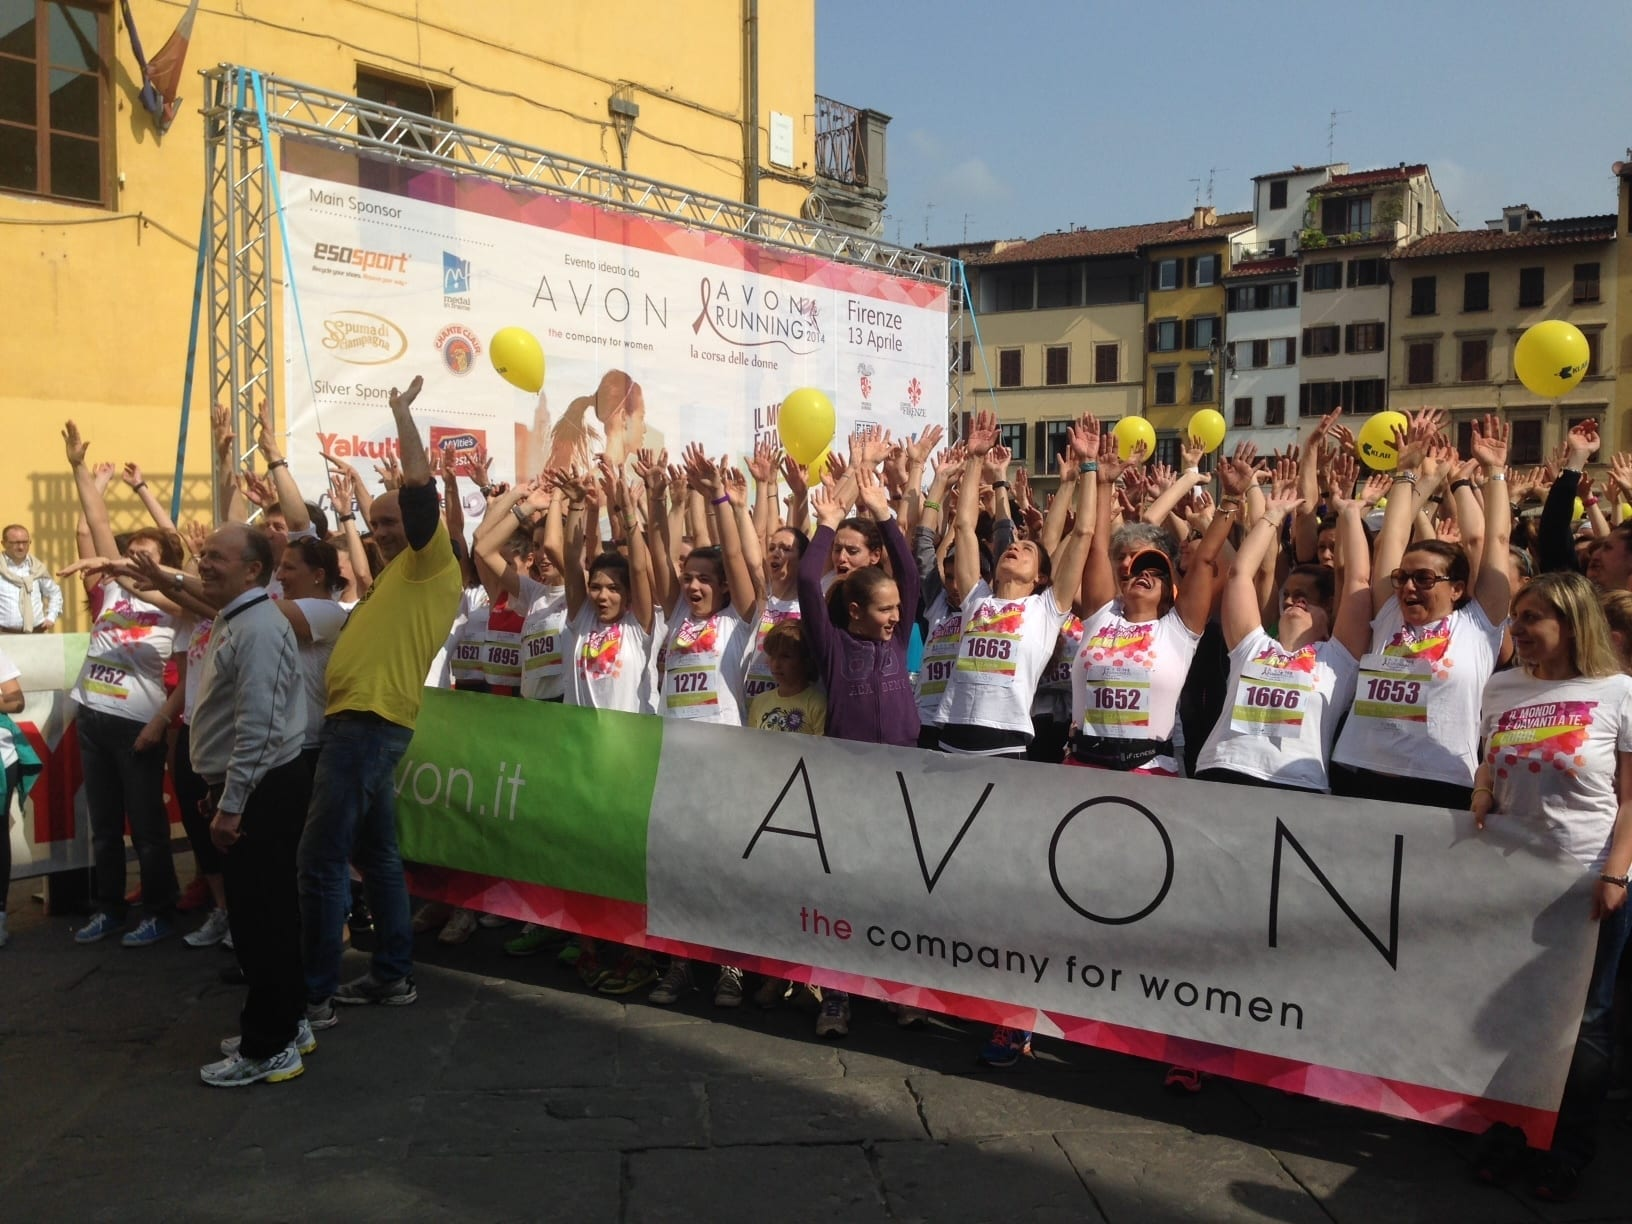 Photo of Oltre 2000 donne all'Avon running a Firenze